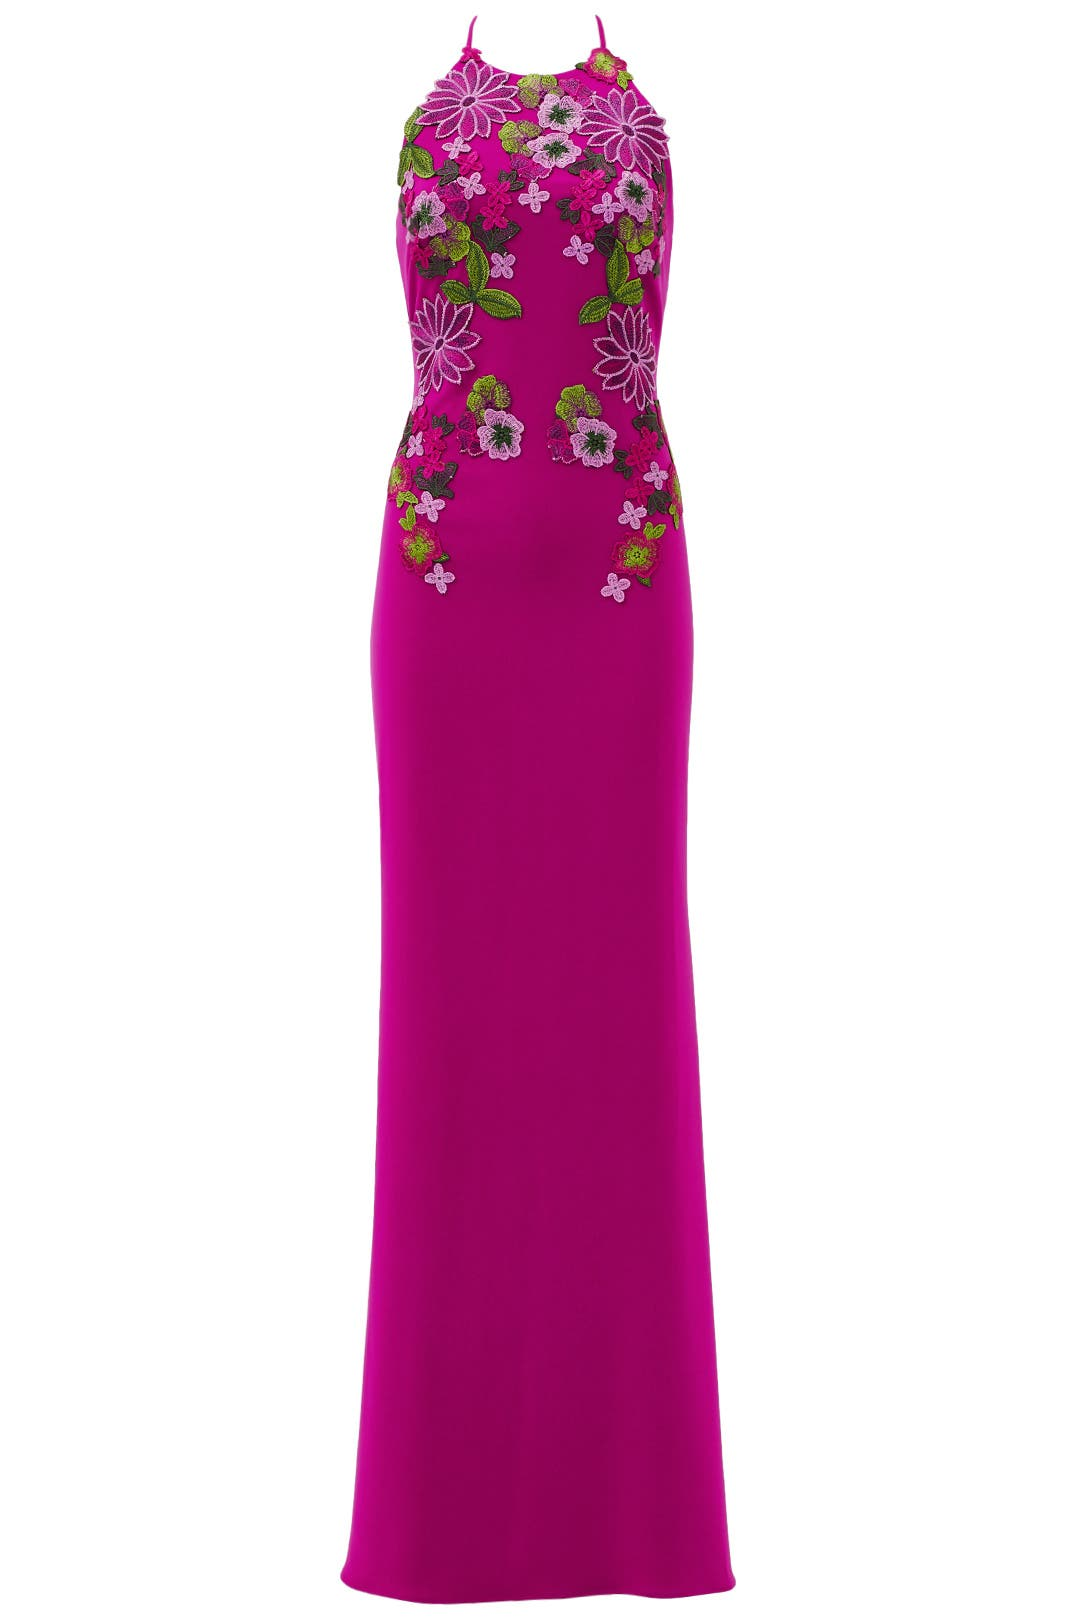 Pink Flower Power Gown by Badgley Mischka for $150 - $160 | Rent the ...